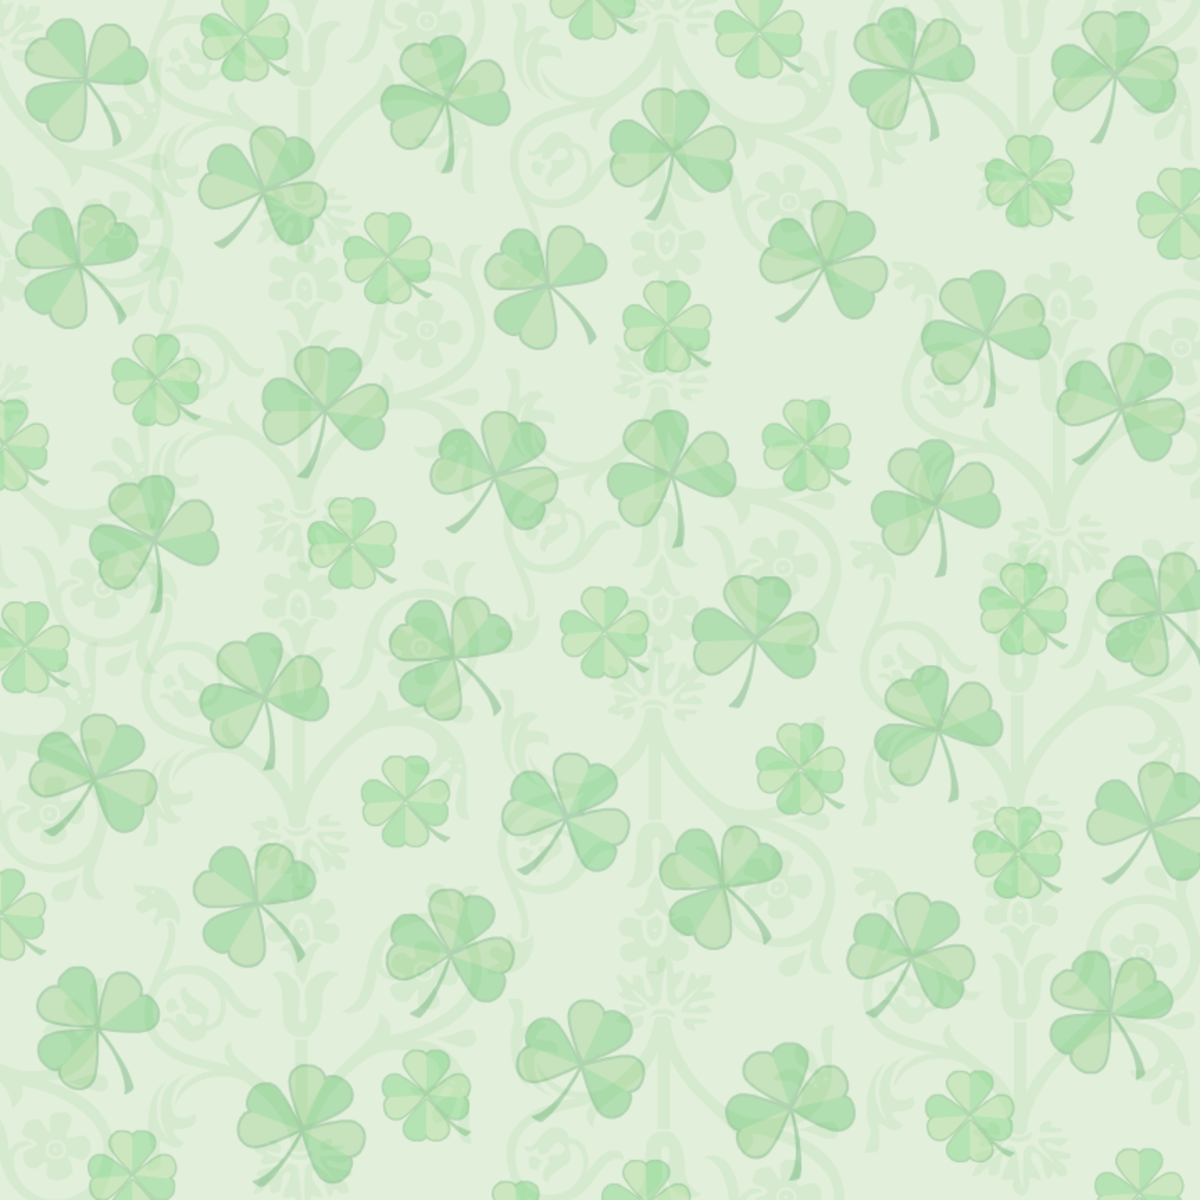 St. Patrick's Day green shamrocks